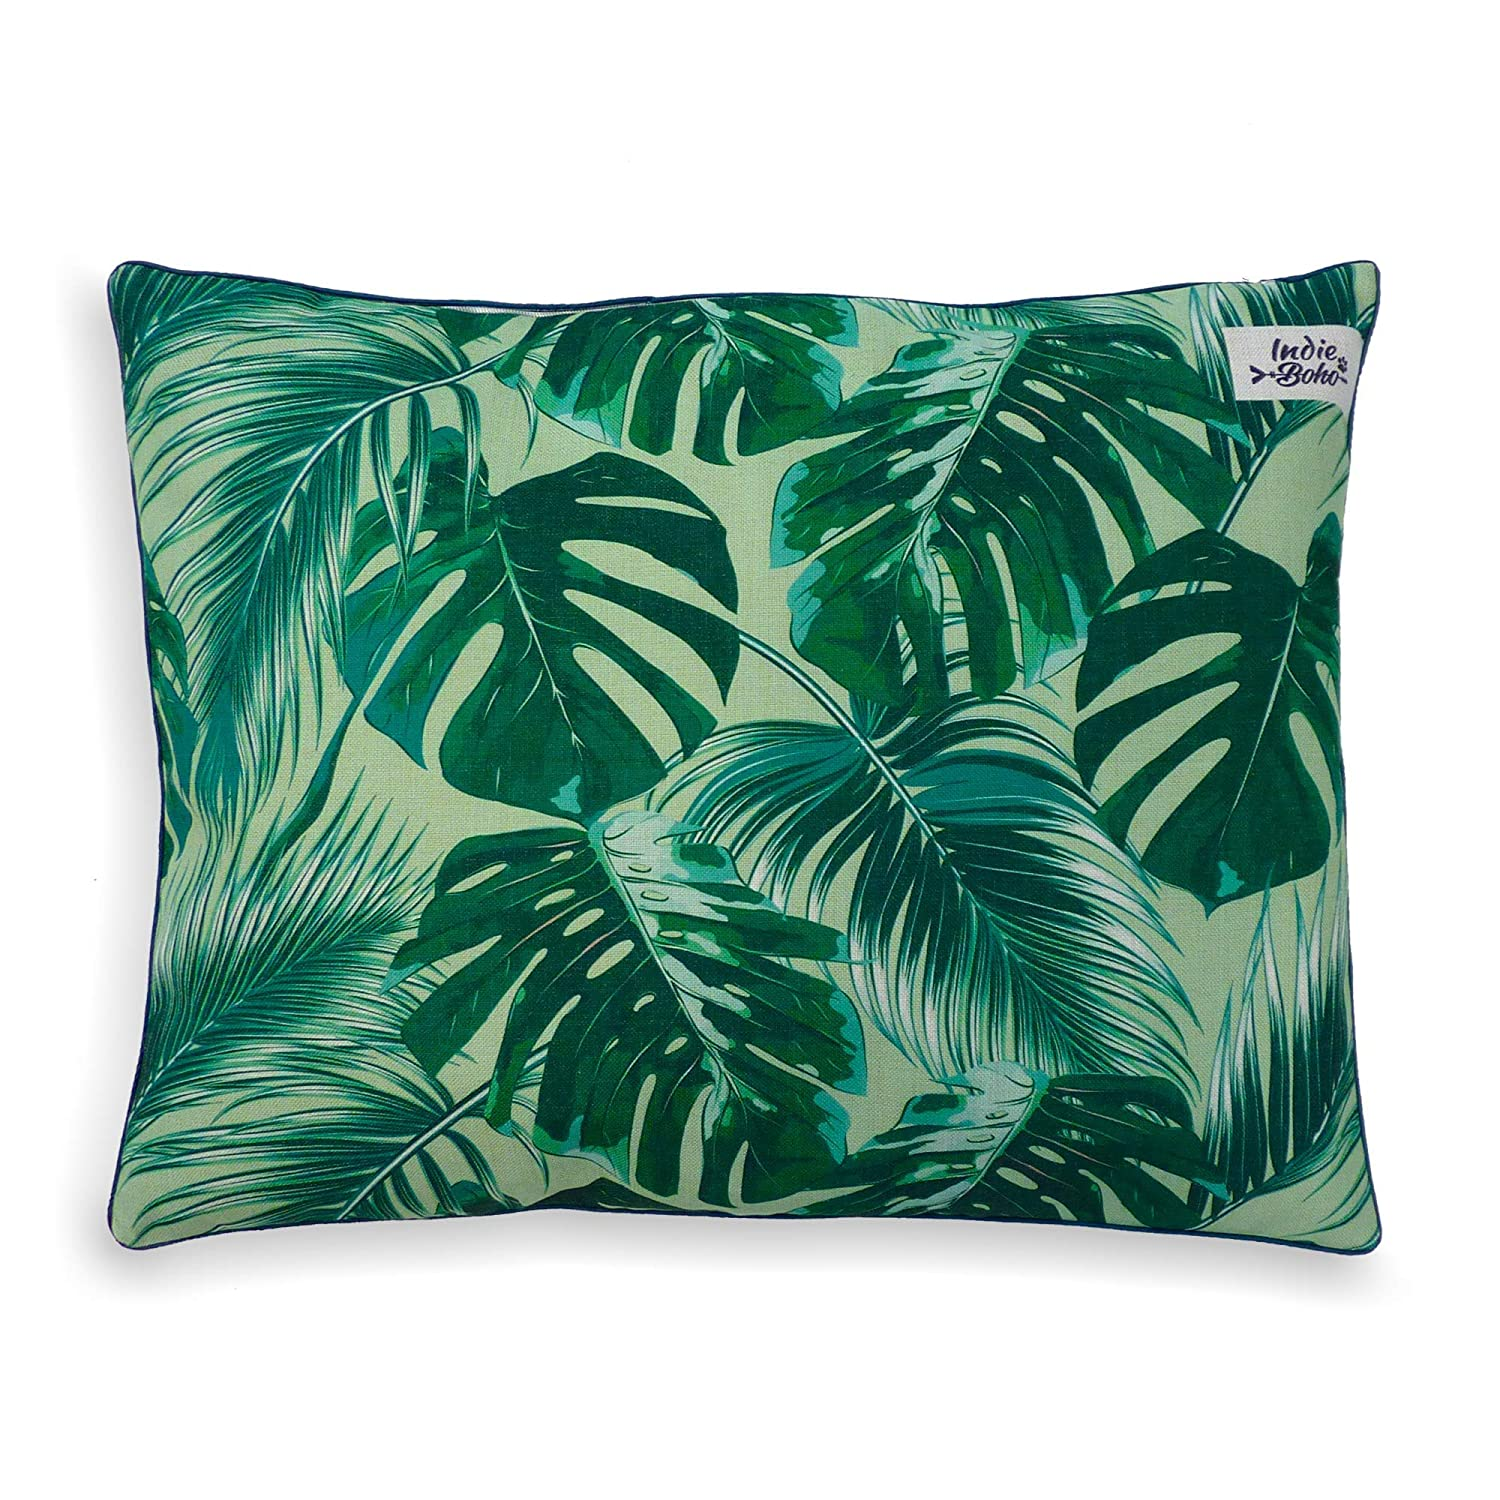 Indie Boho Pets Luxury Designer Dog Bed with Removable and Washable Cover in Green Tropical Leaves Design